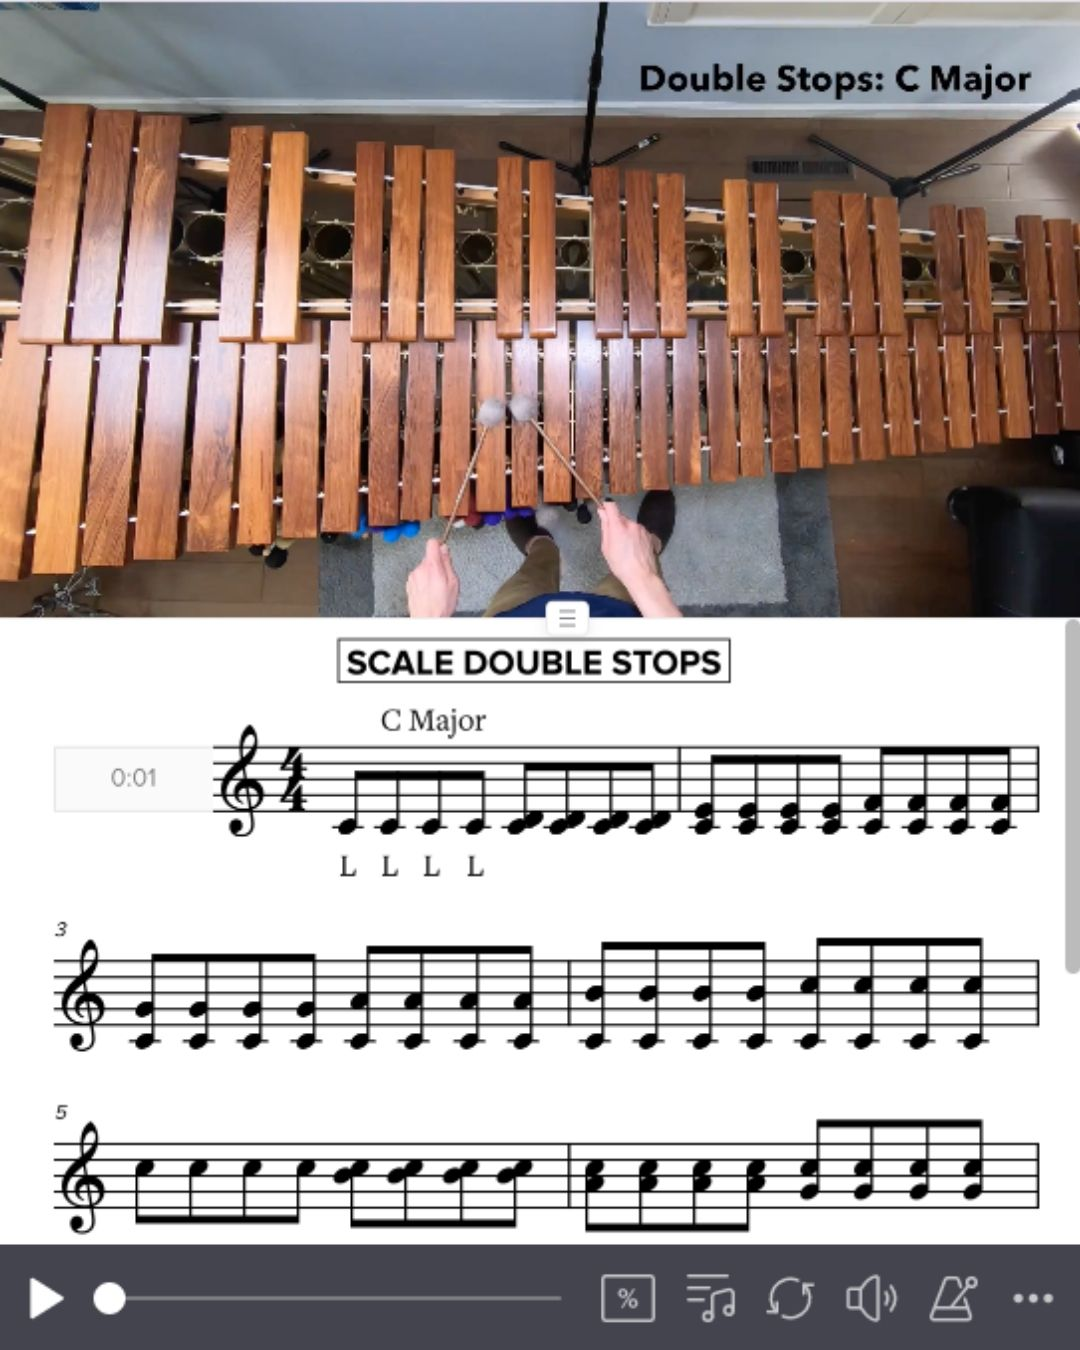 Scale Double Stops